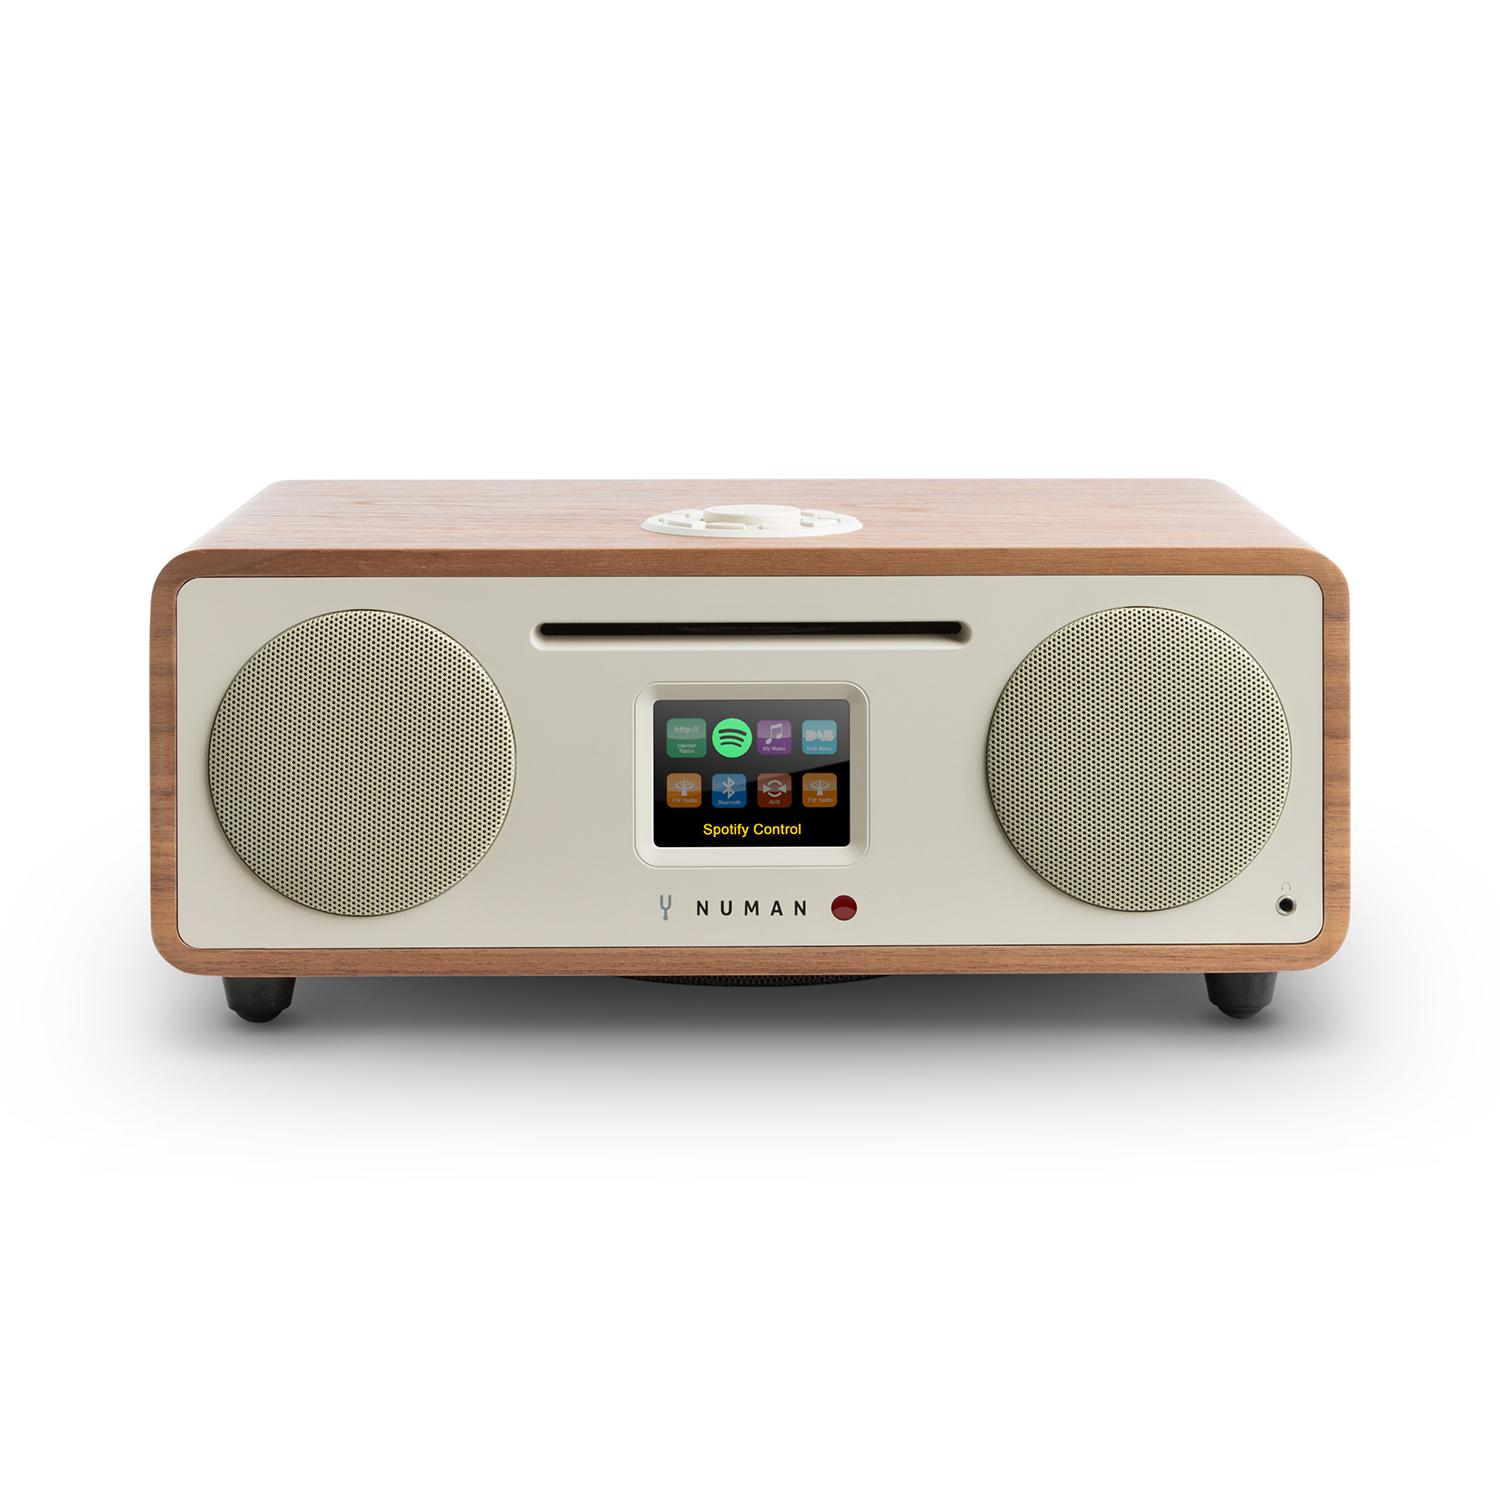 numan two 2 1 internet radio cd 30w usb bluetooth dab. Black Bedroom Furniture Sets. Home Design Ideas